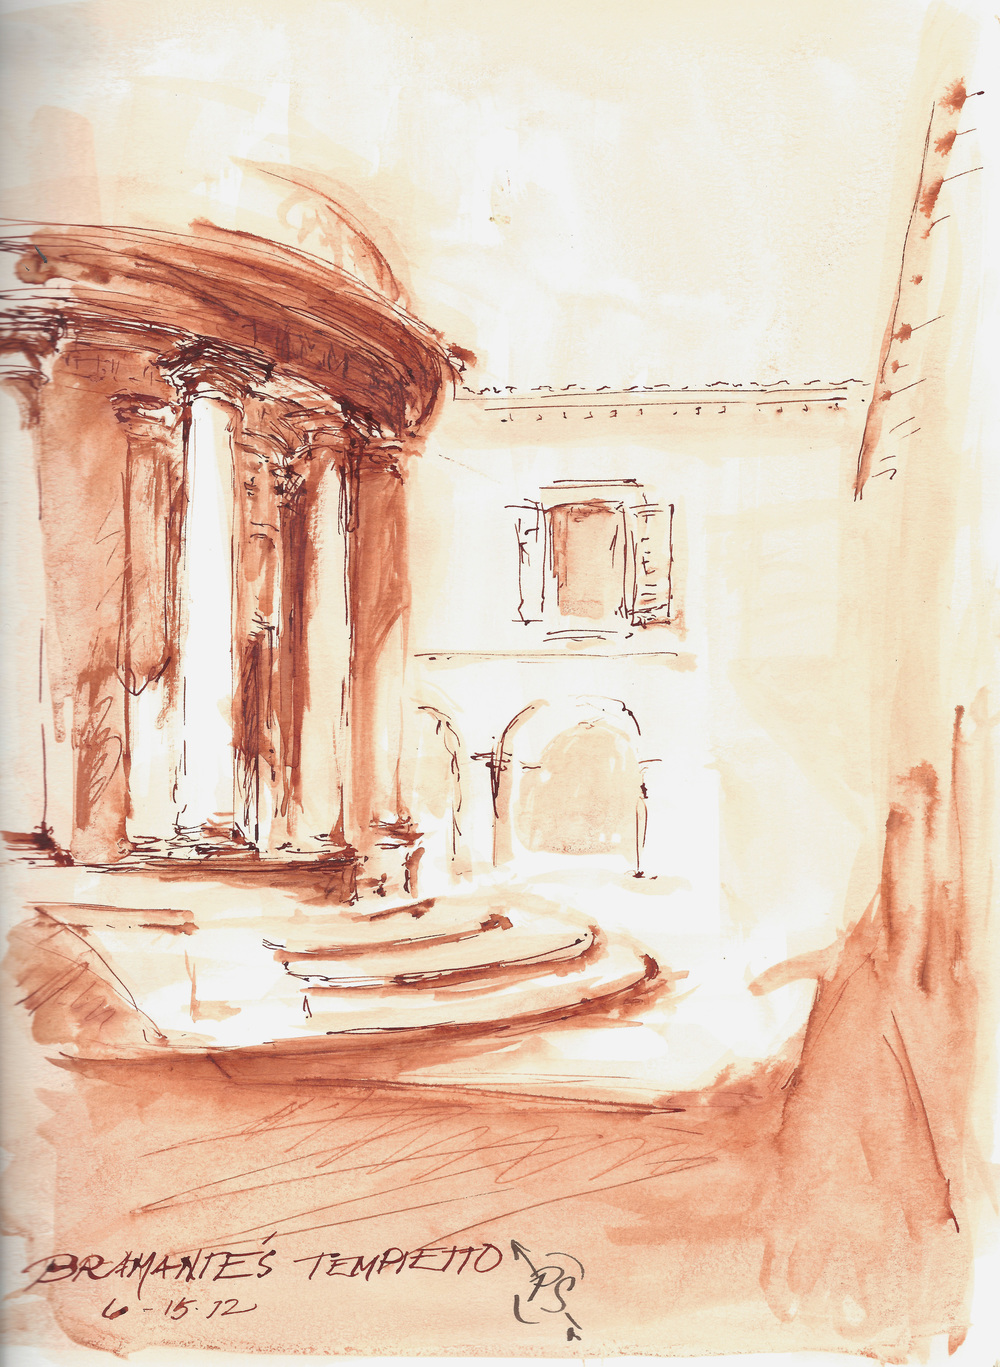 Pen and Ink, Bramante's Tempietto